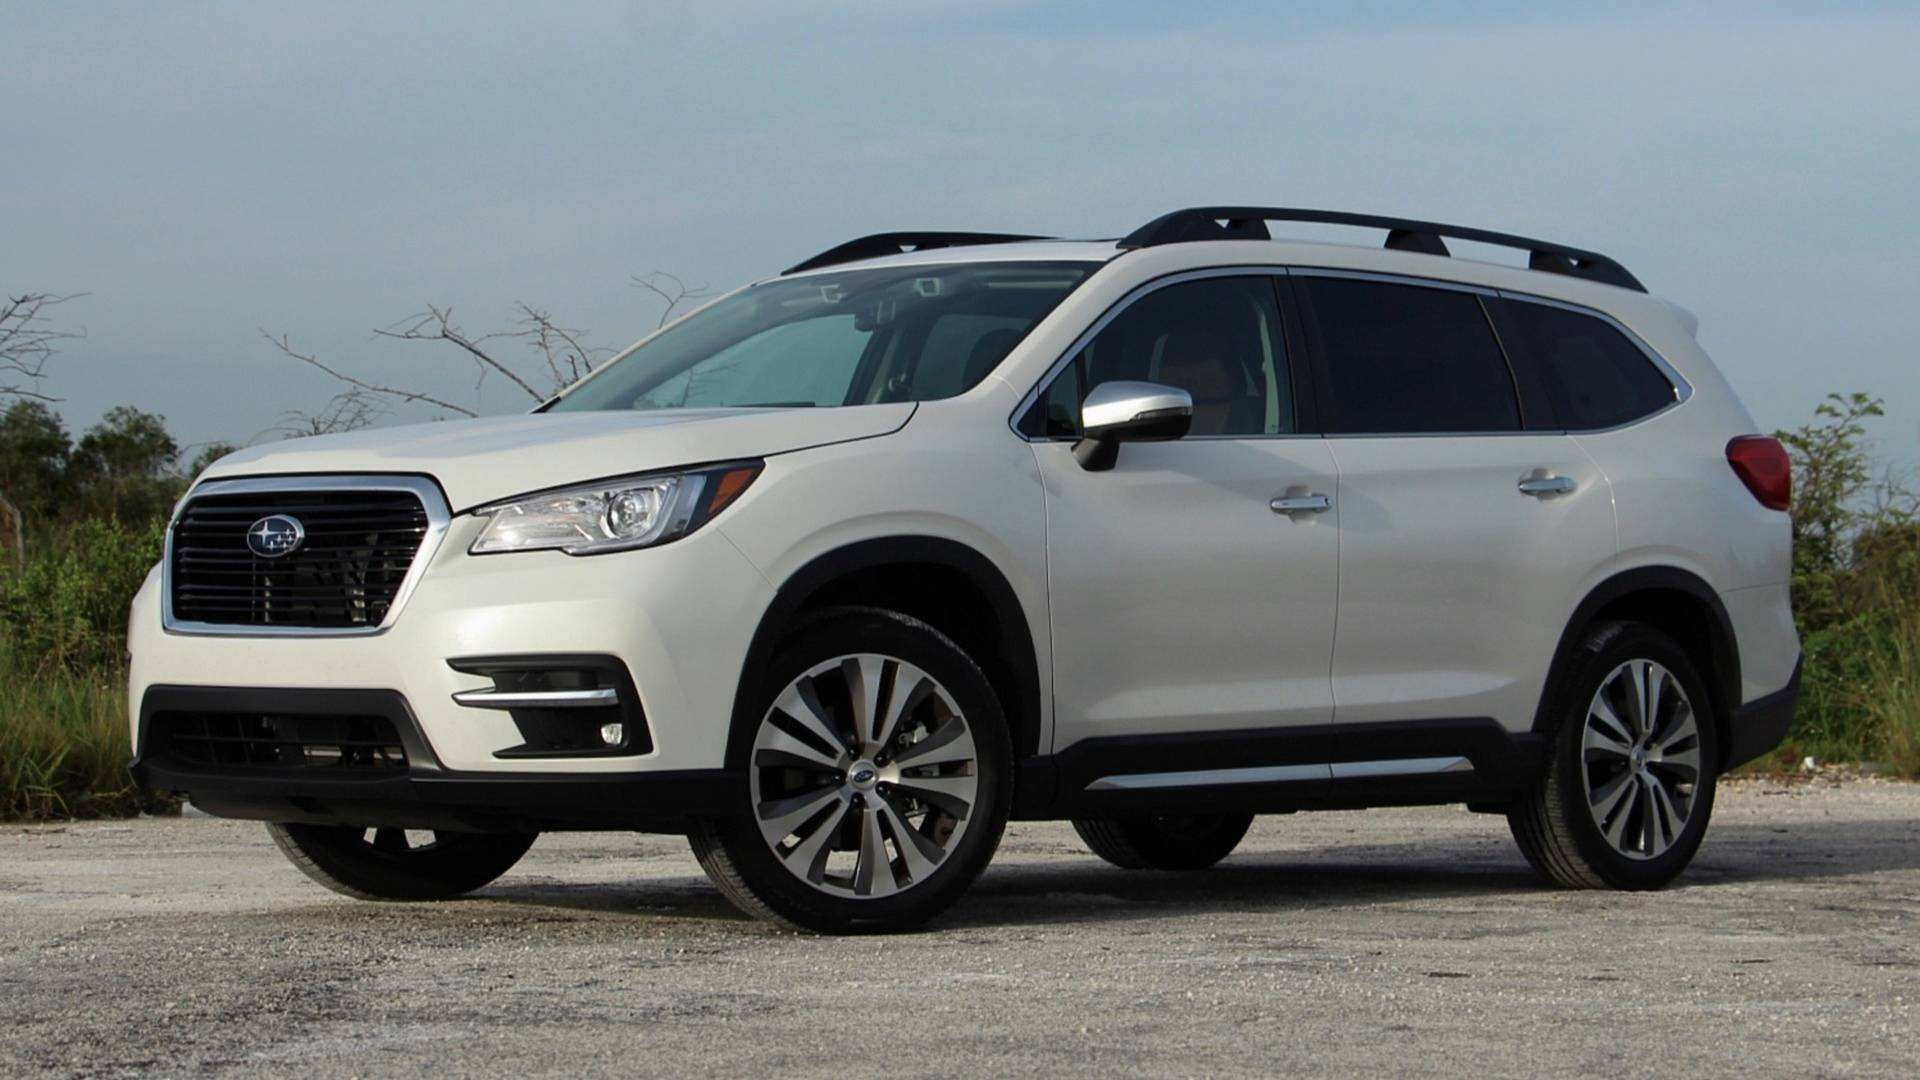 95 Best Review Best Subaru 2019 Ascent Recall Spy Shoot Performance and New Engine by Best Subaru 2019 Ascent Recall Spy Shoot